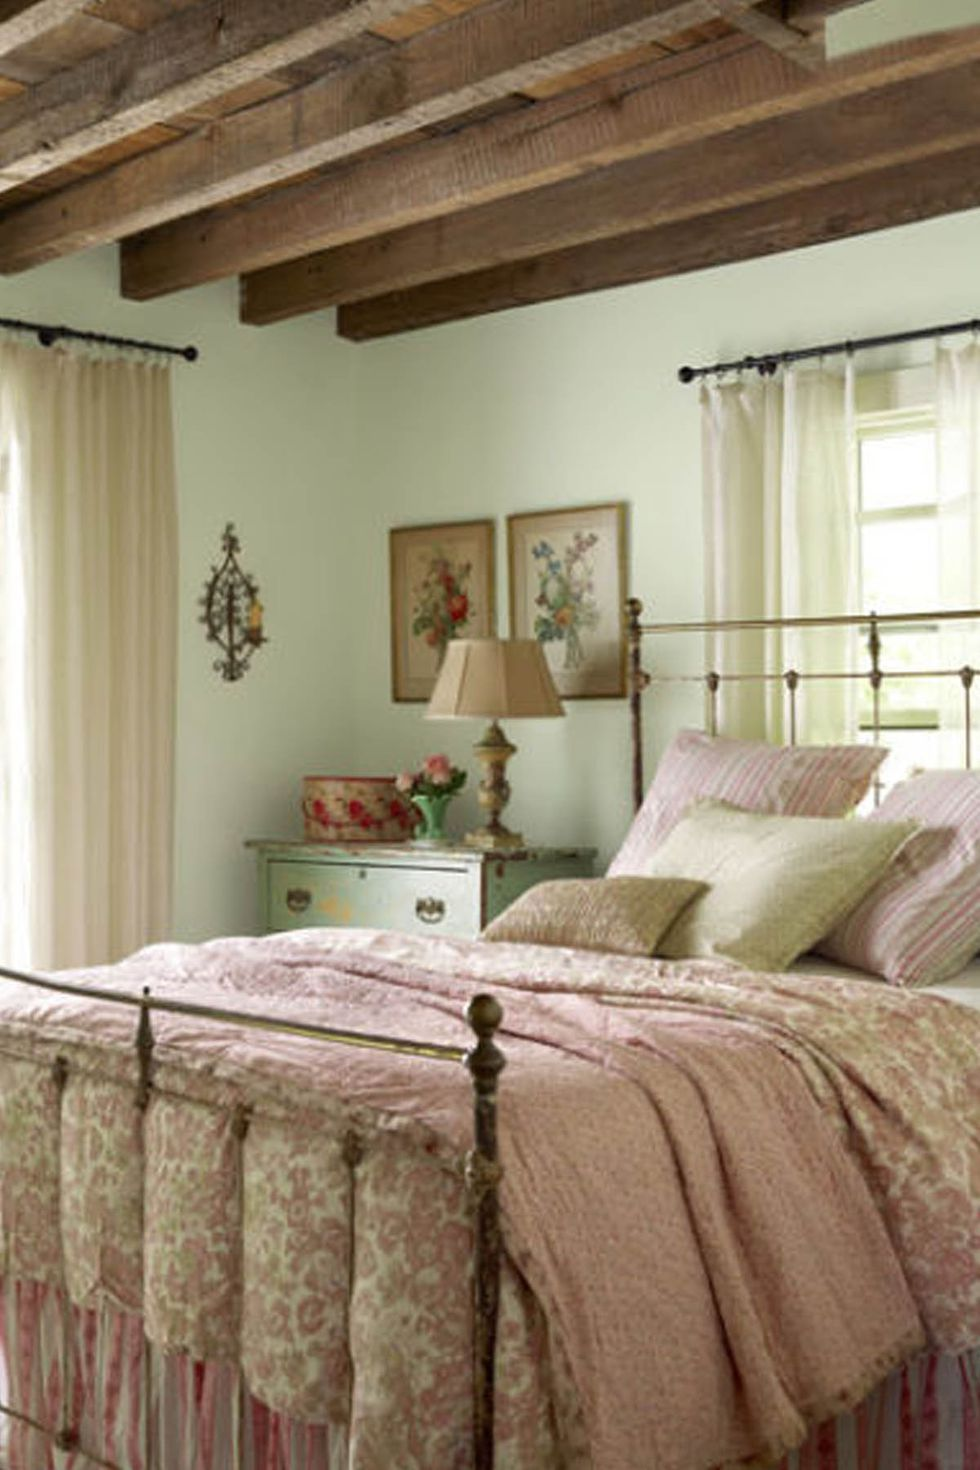 This Cozy Bedroom Decor Will Make You Want To Stay In Bed All Day French Style Bedroom Country Bedroom Chic Bedroom